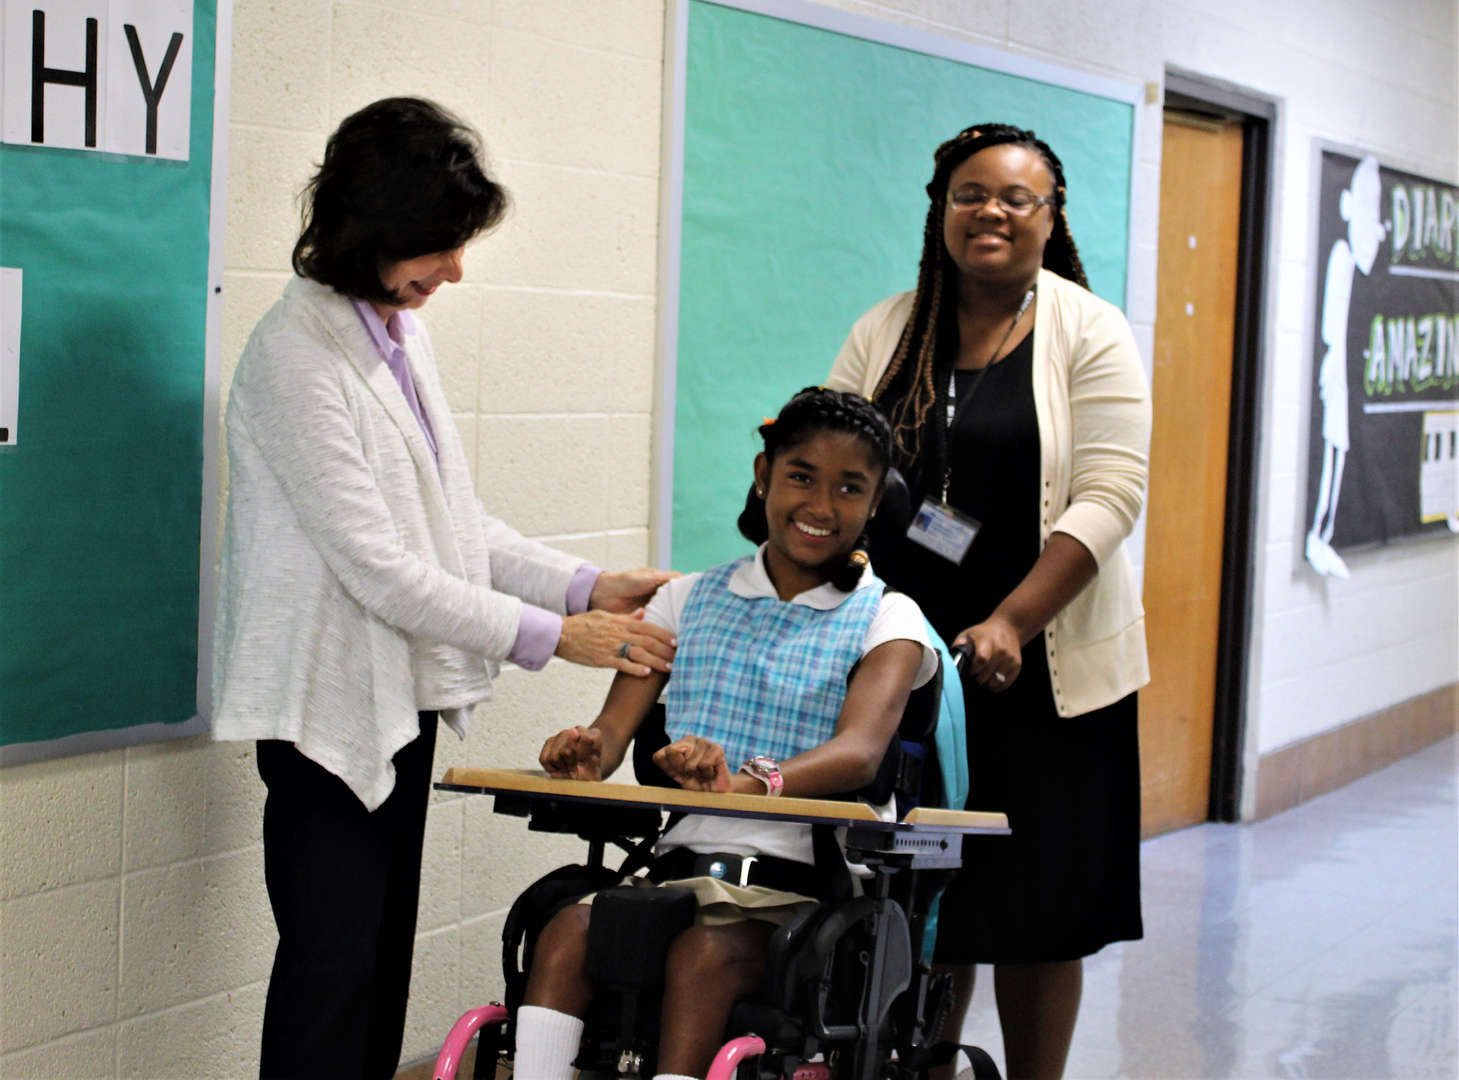 The principal greeting a wheelchair-bound student.